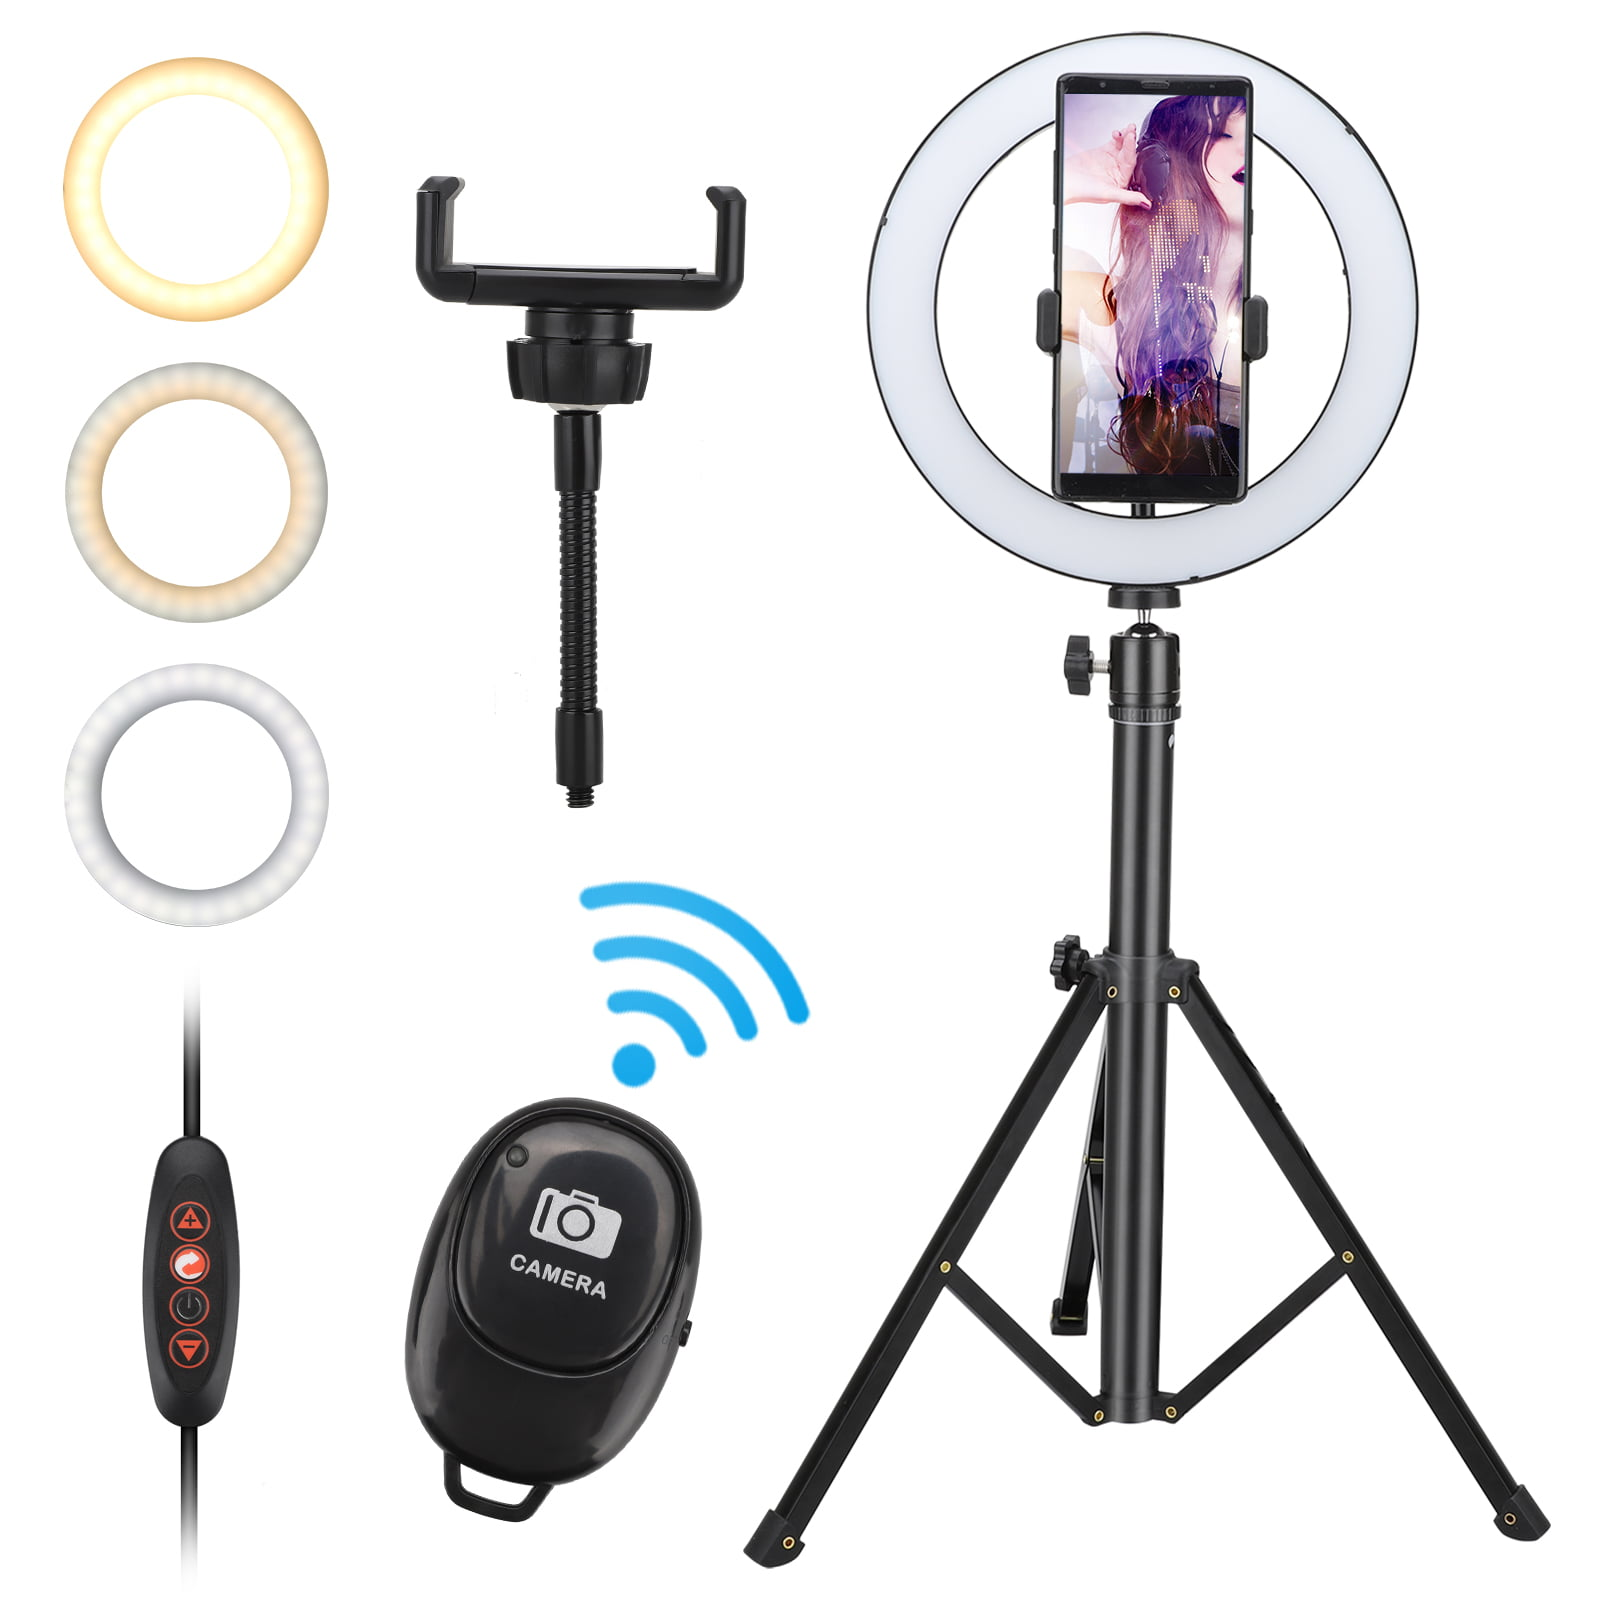 Ring light LED Kit with Bluetooth Remote Control Adjustable Brightness Flash Lamp with Tripod Phone Holder for YouTube Makeup Video